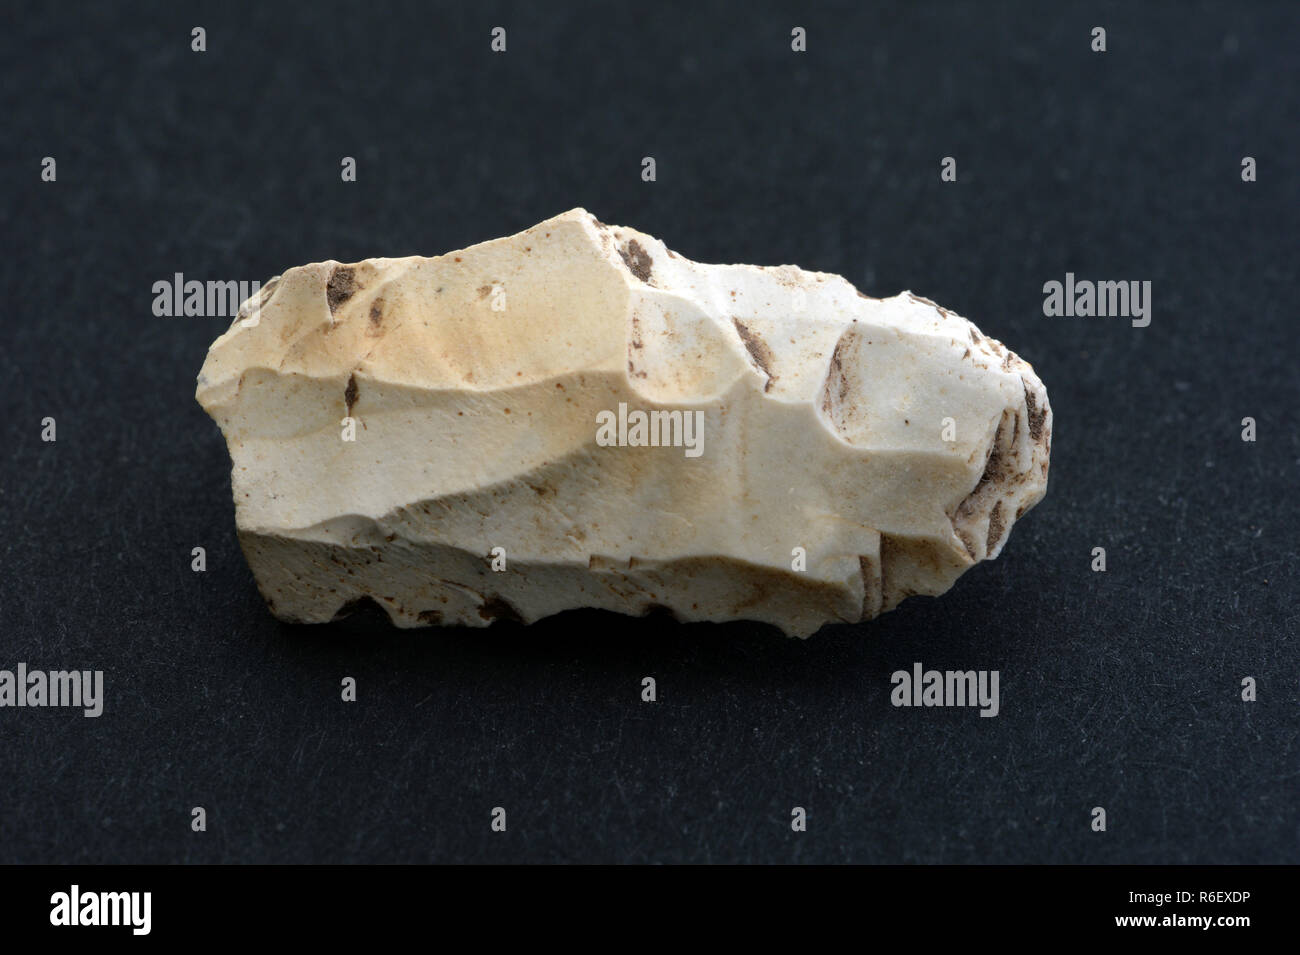 Shaped flint from Gower Peninsula in south Wales used by early paleolithic people. Flint does not occur locally so this is evidence of early traders Stock Photo